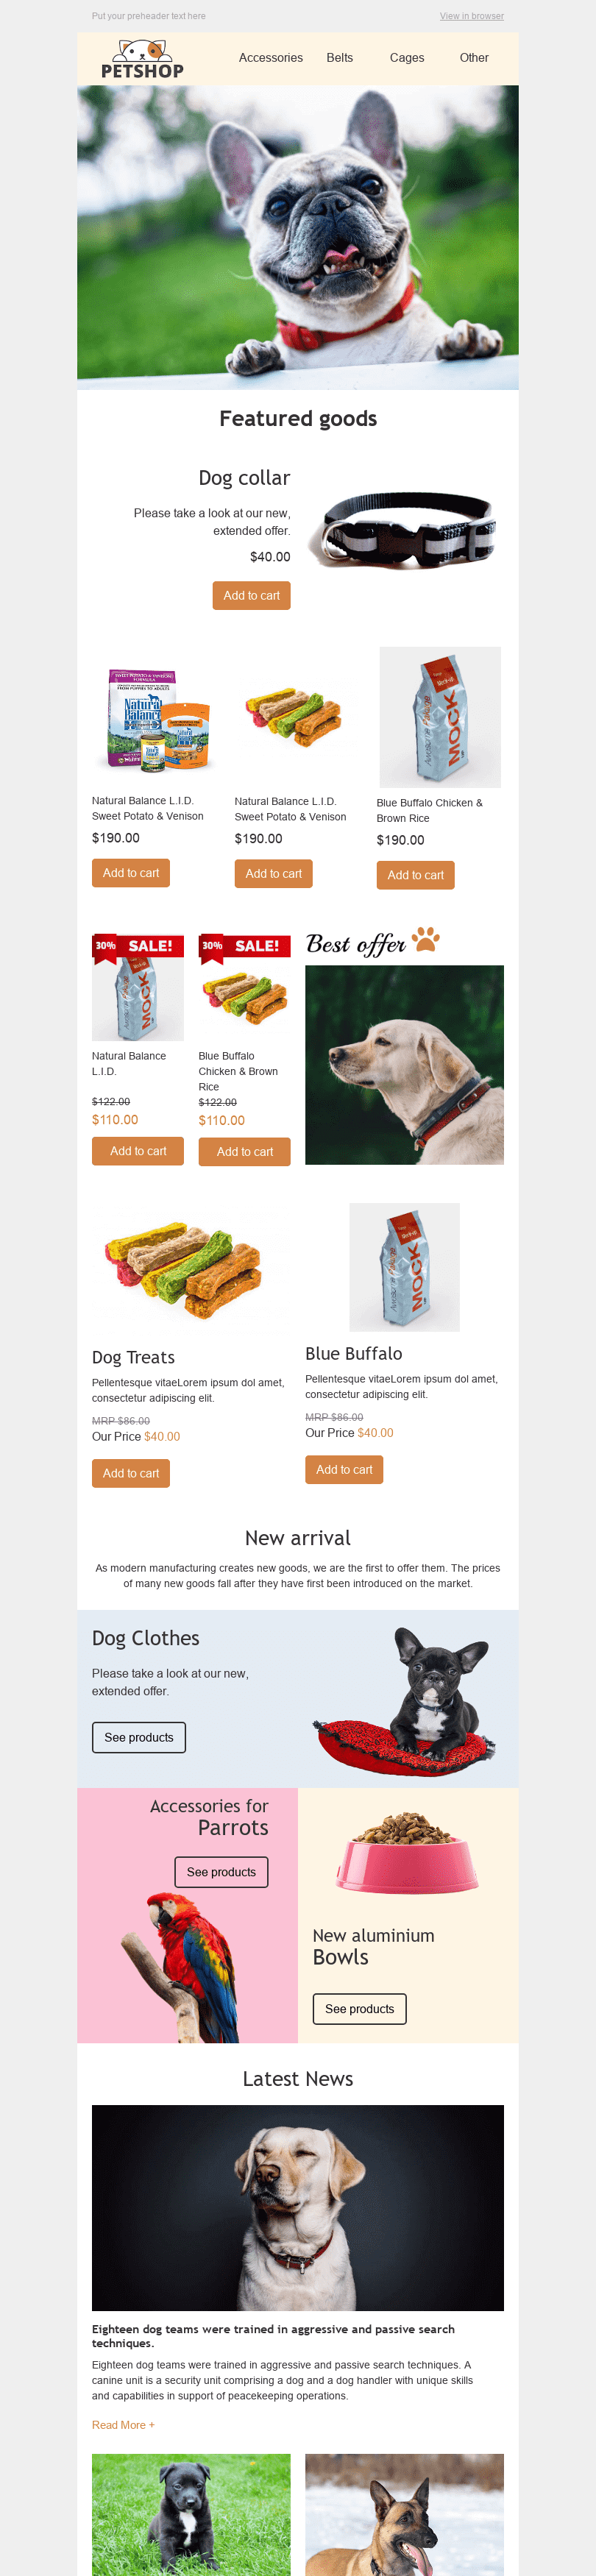 Stripo Pets Promo newsletter email web